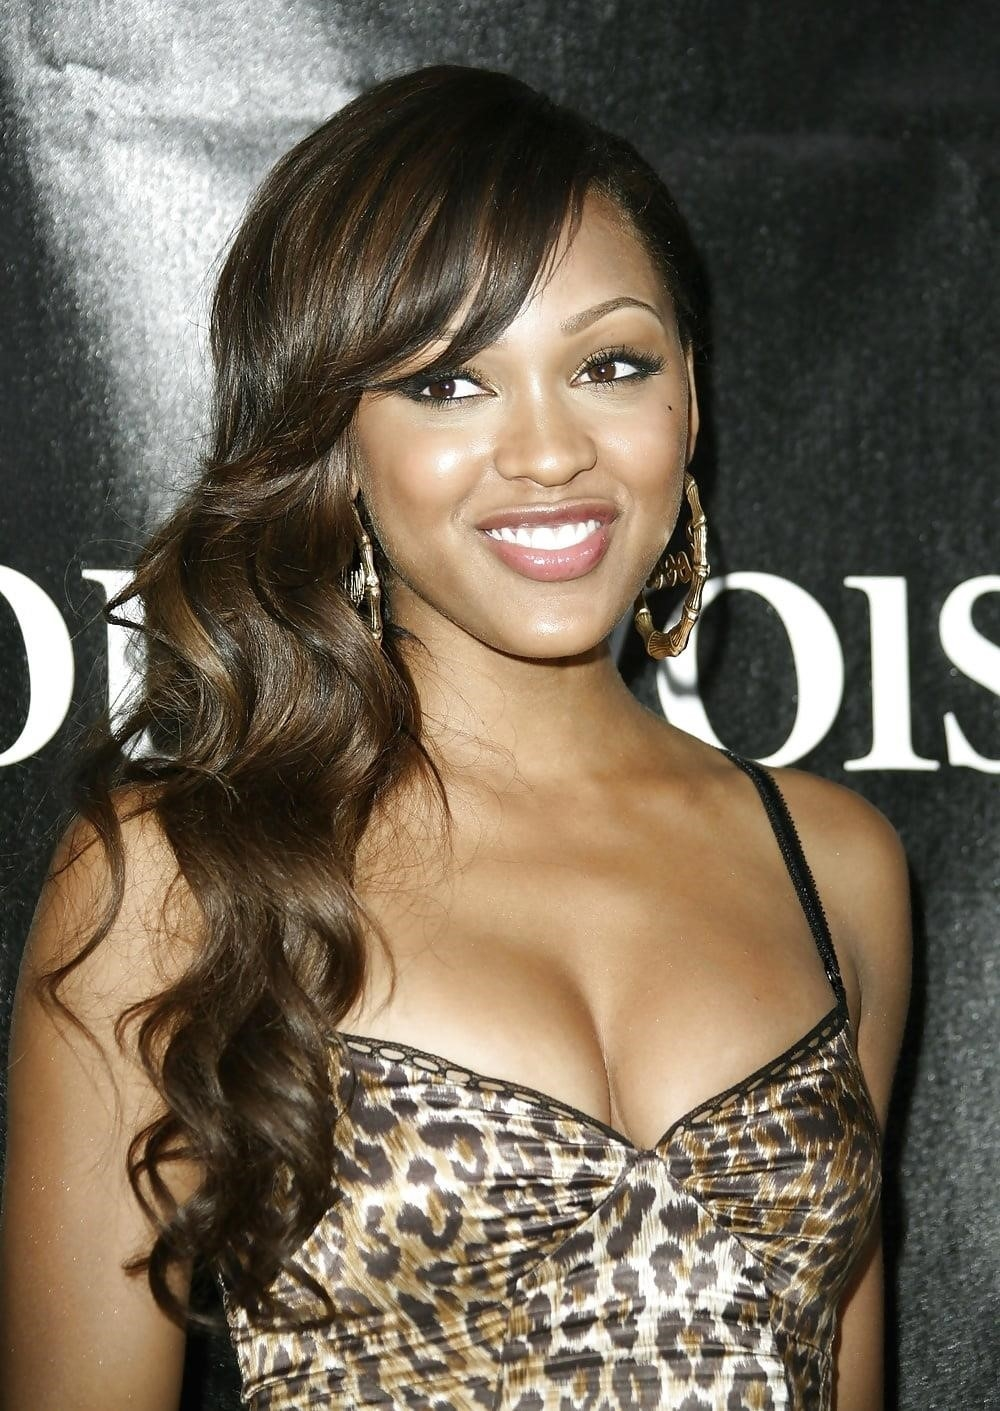 Meagan good nude pictures-8777